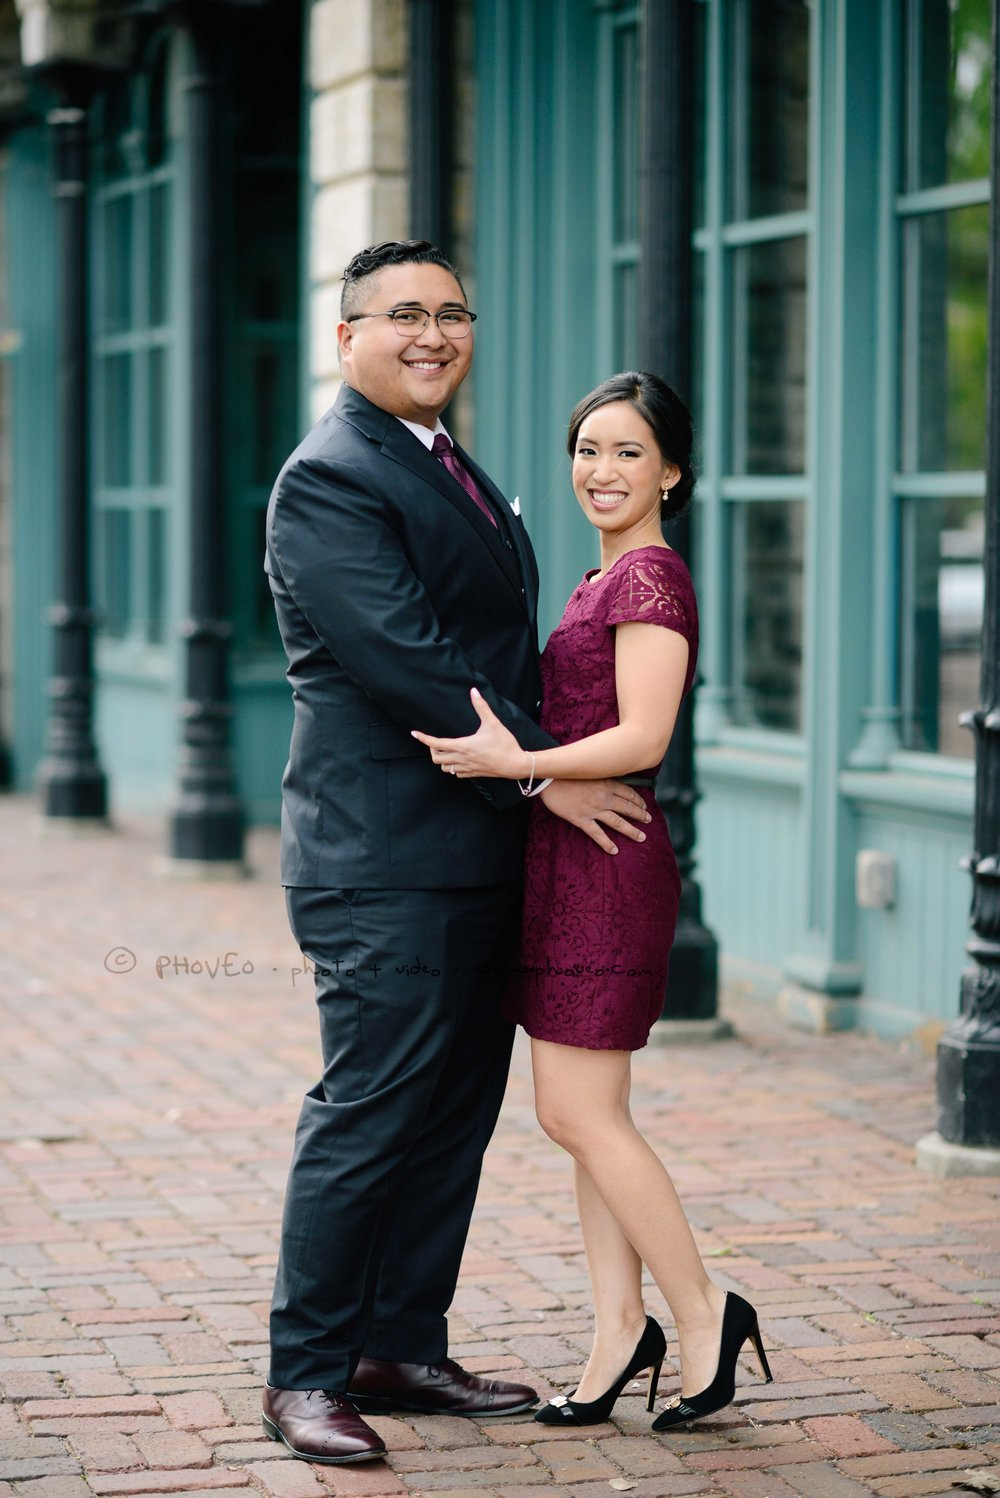 WM_20180510_Nicole+Chris_10.jpg